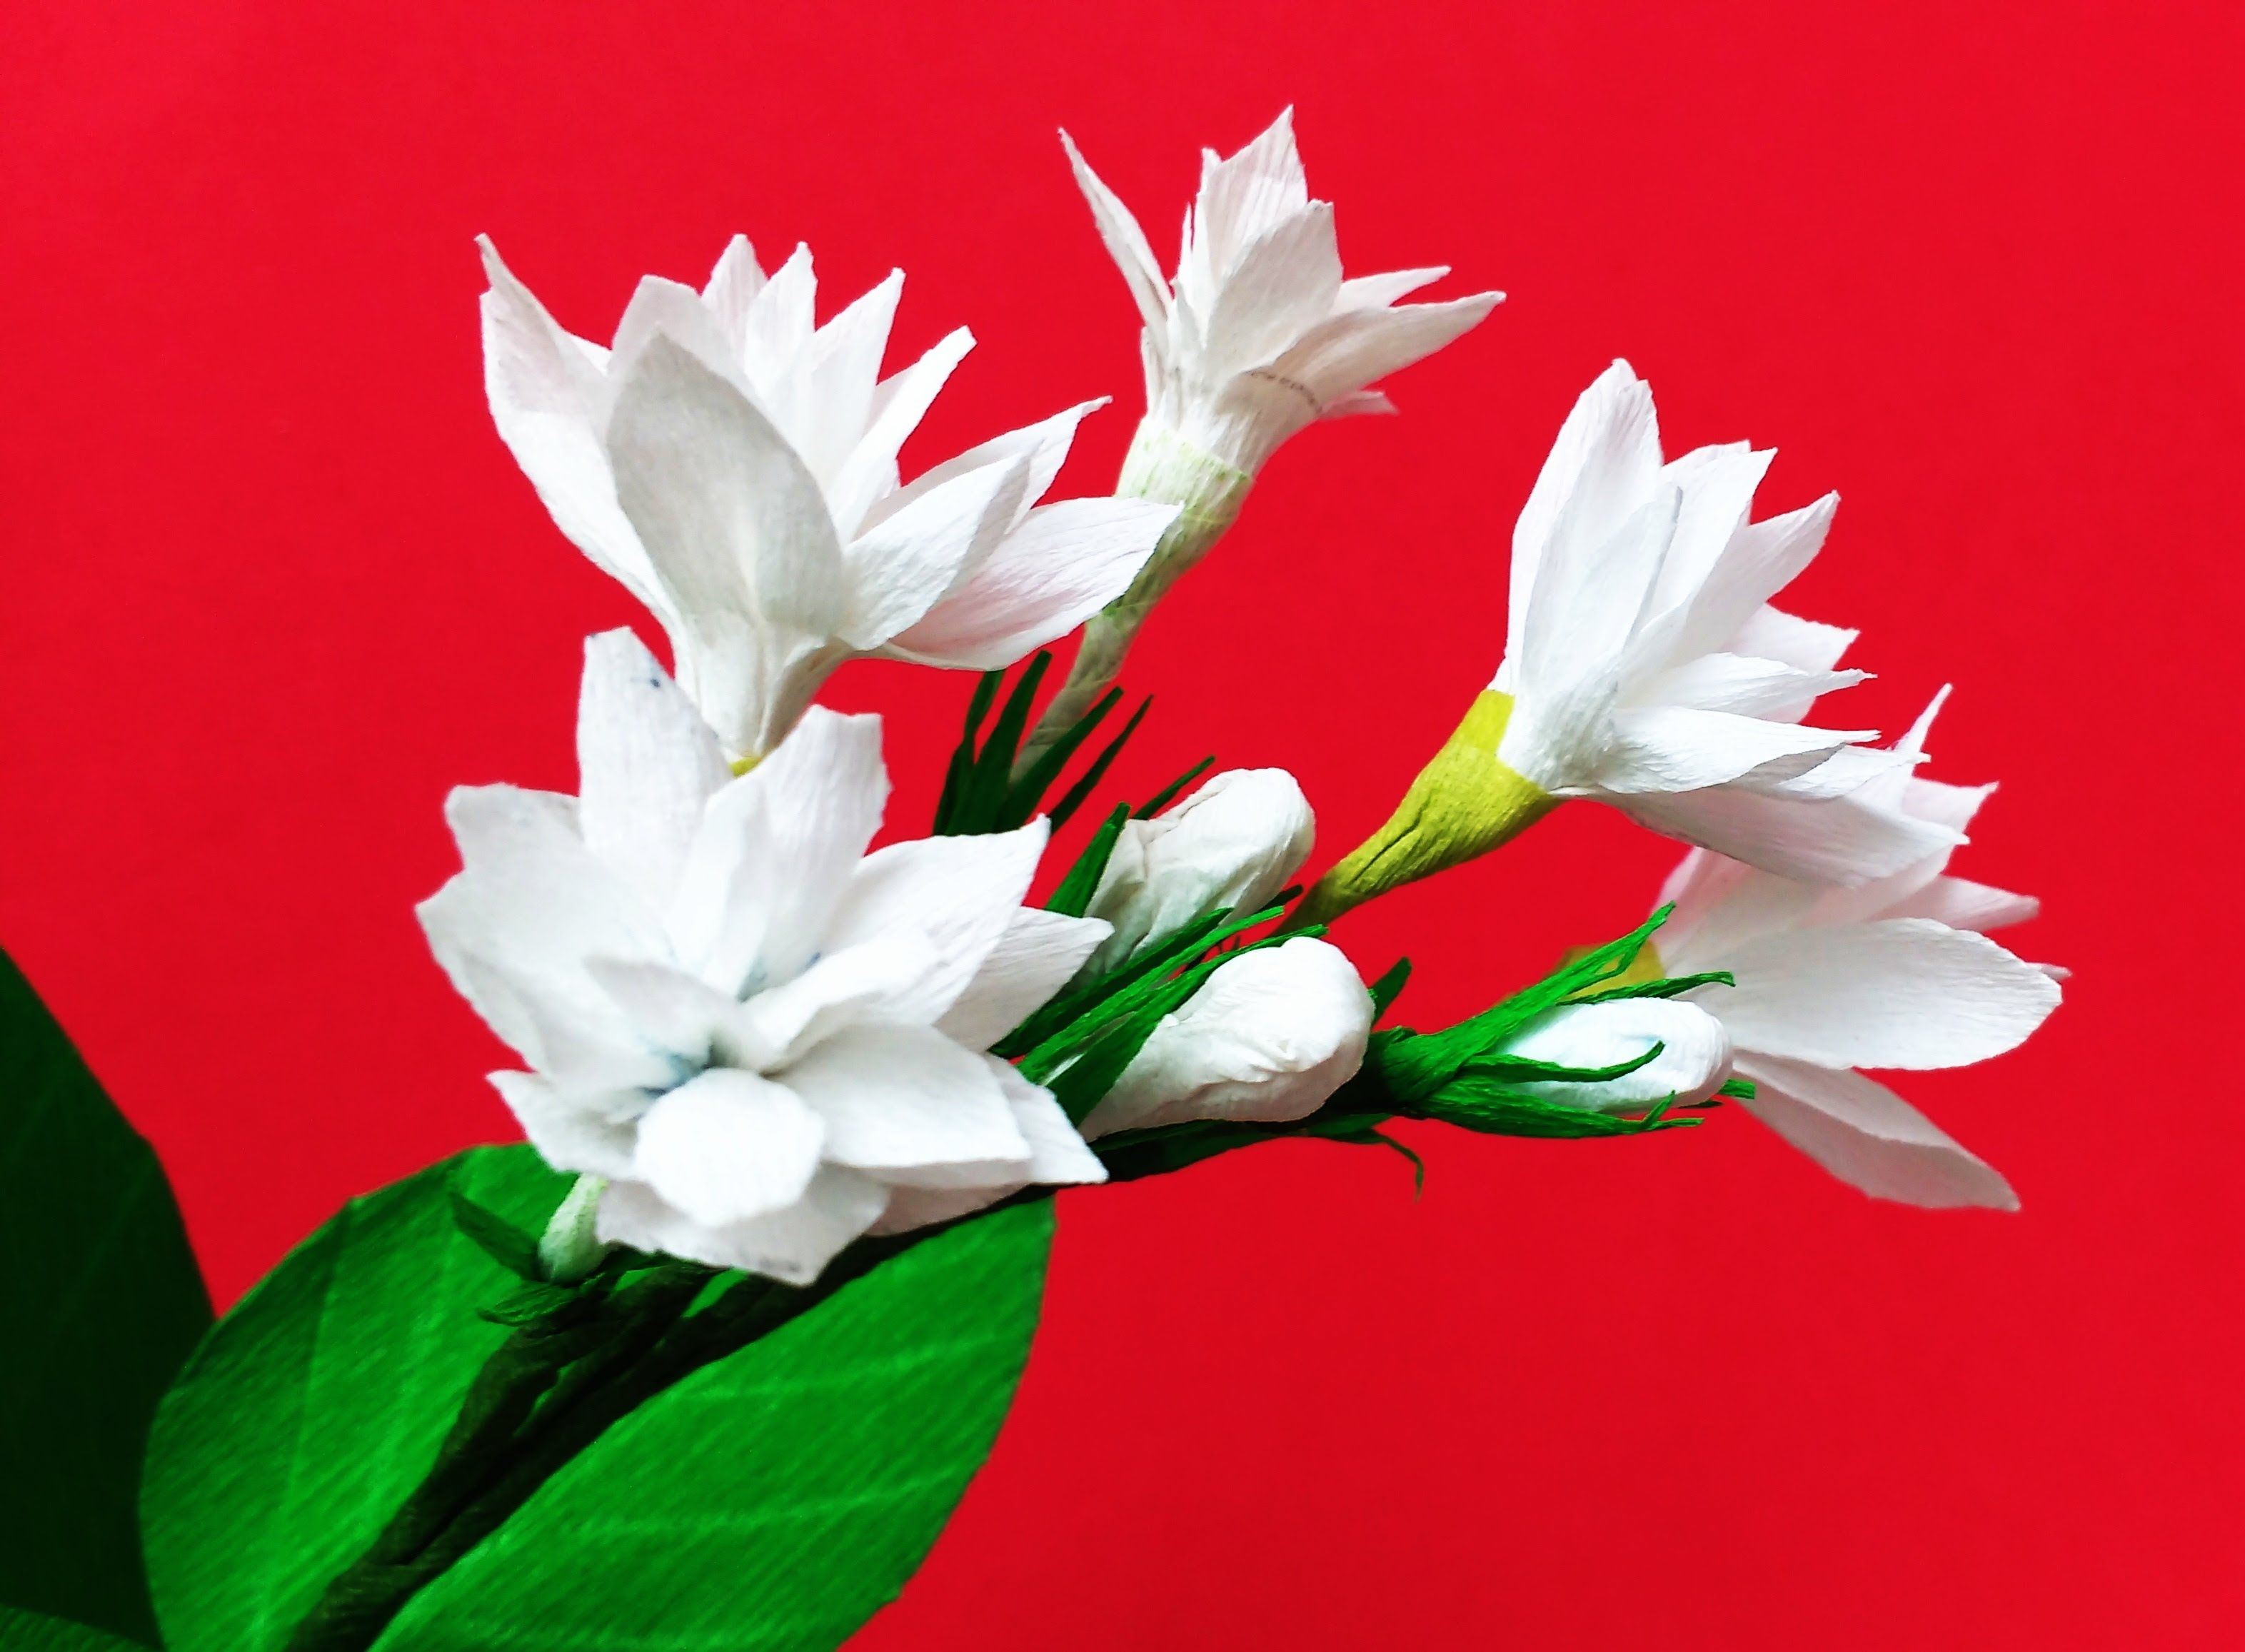 Paper flower mogra arabian jasmine flower 84 flores pretty in any color hyacinth makes a beautiful and stunning bouquet or flower arrangement this is an easy tutorial with stencils to make this gorgeous dhlflorist Image collections